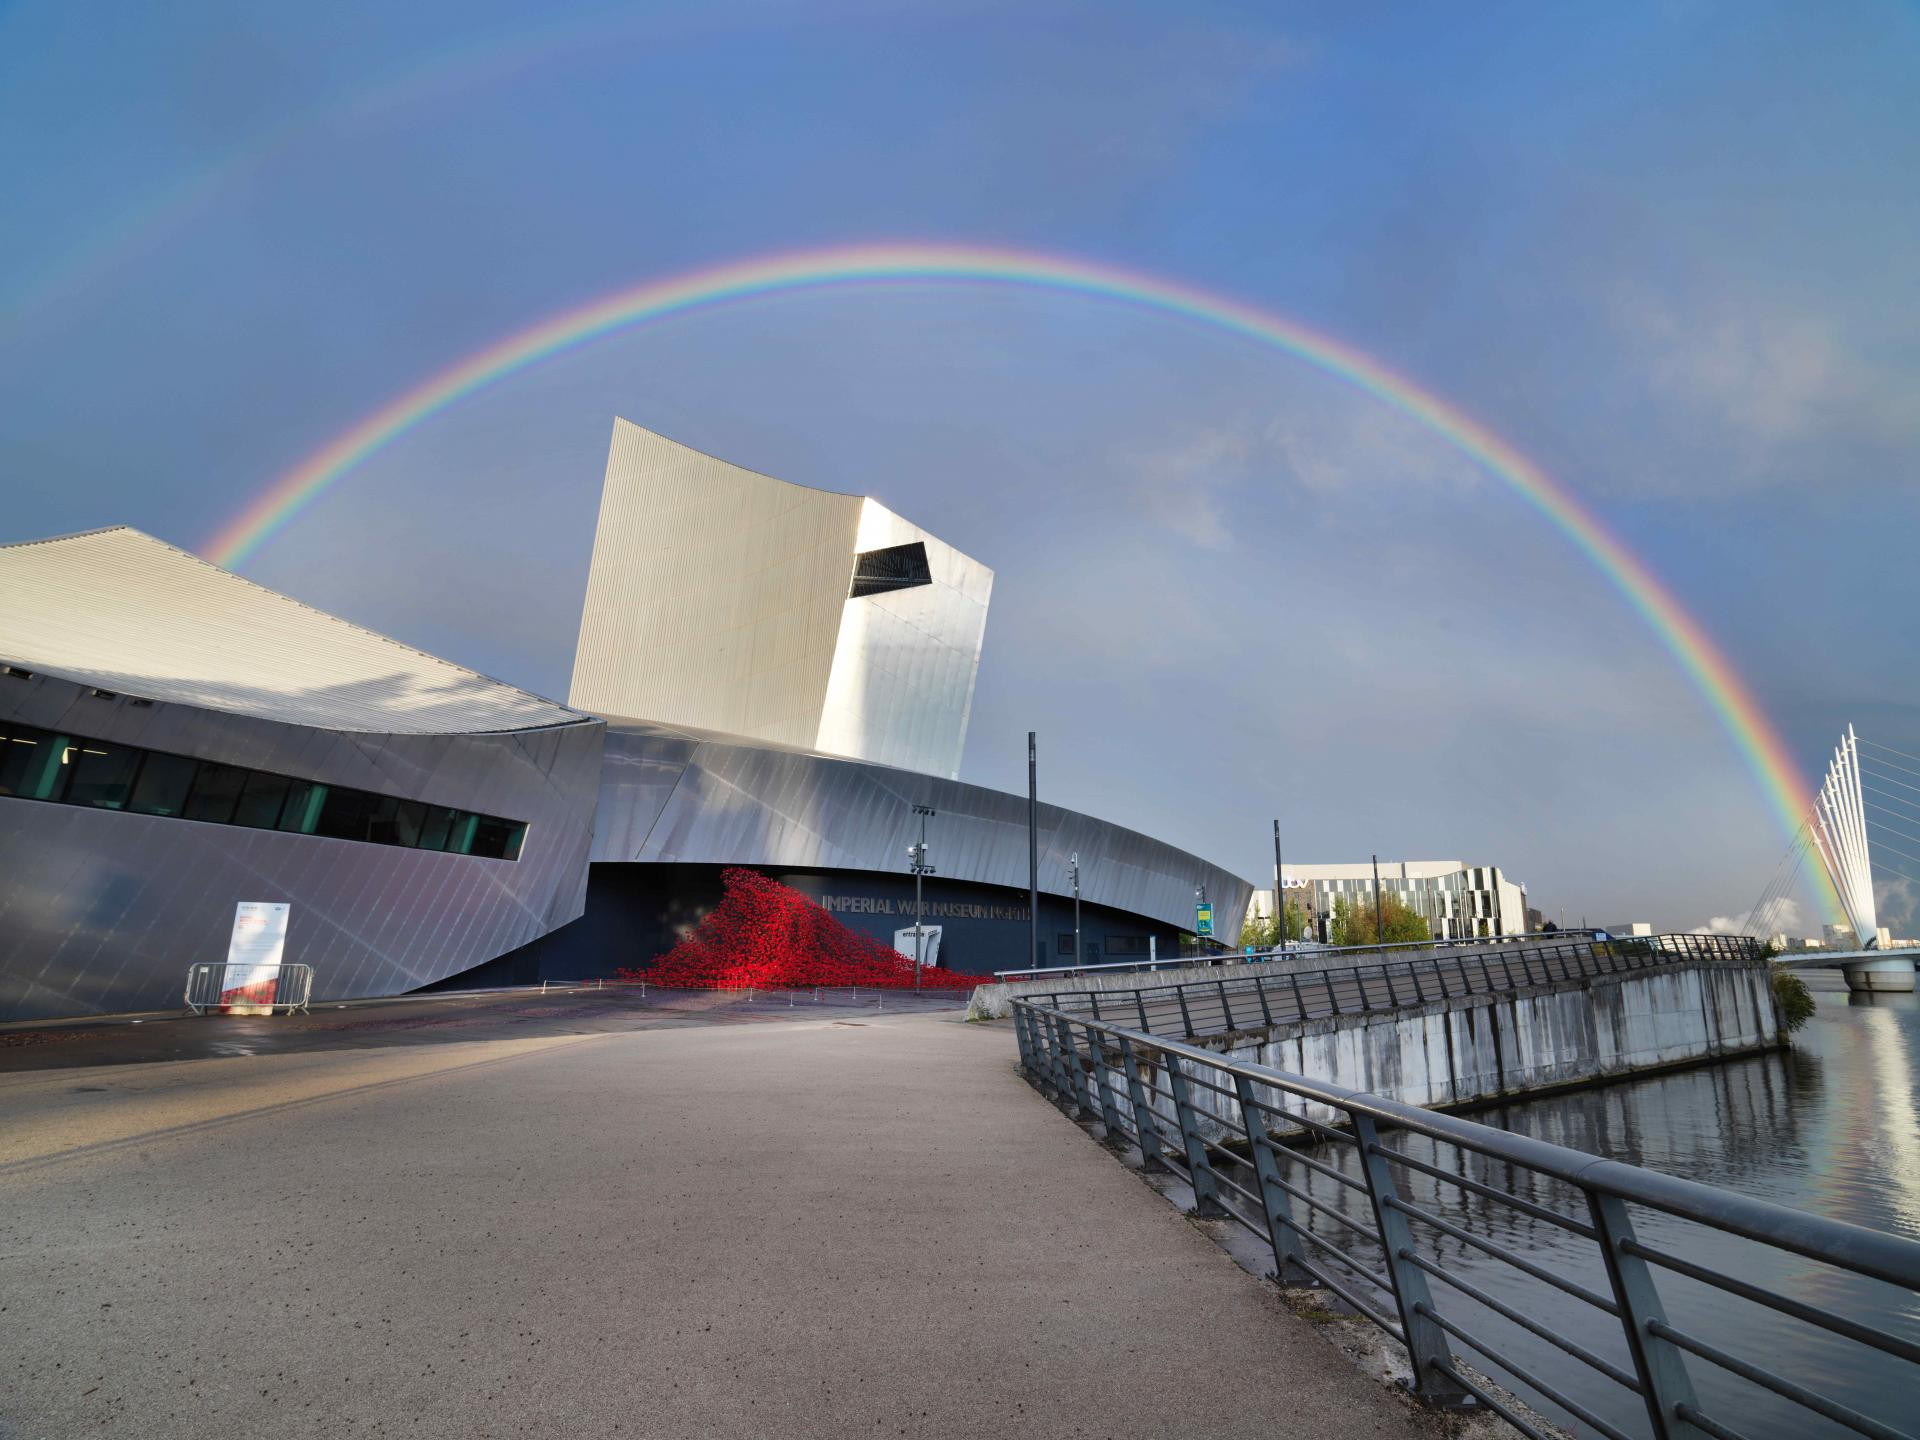 External view of IWM North with rainbow